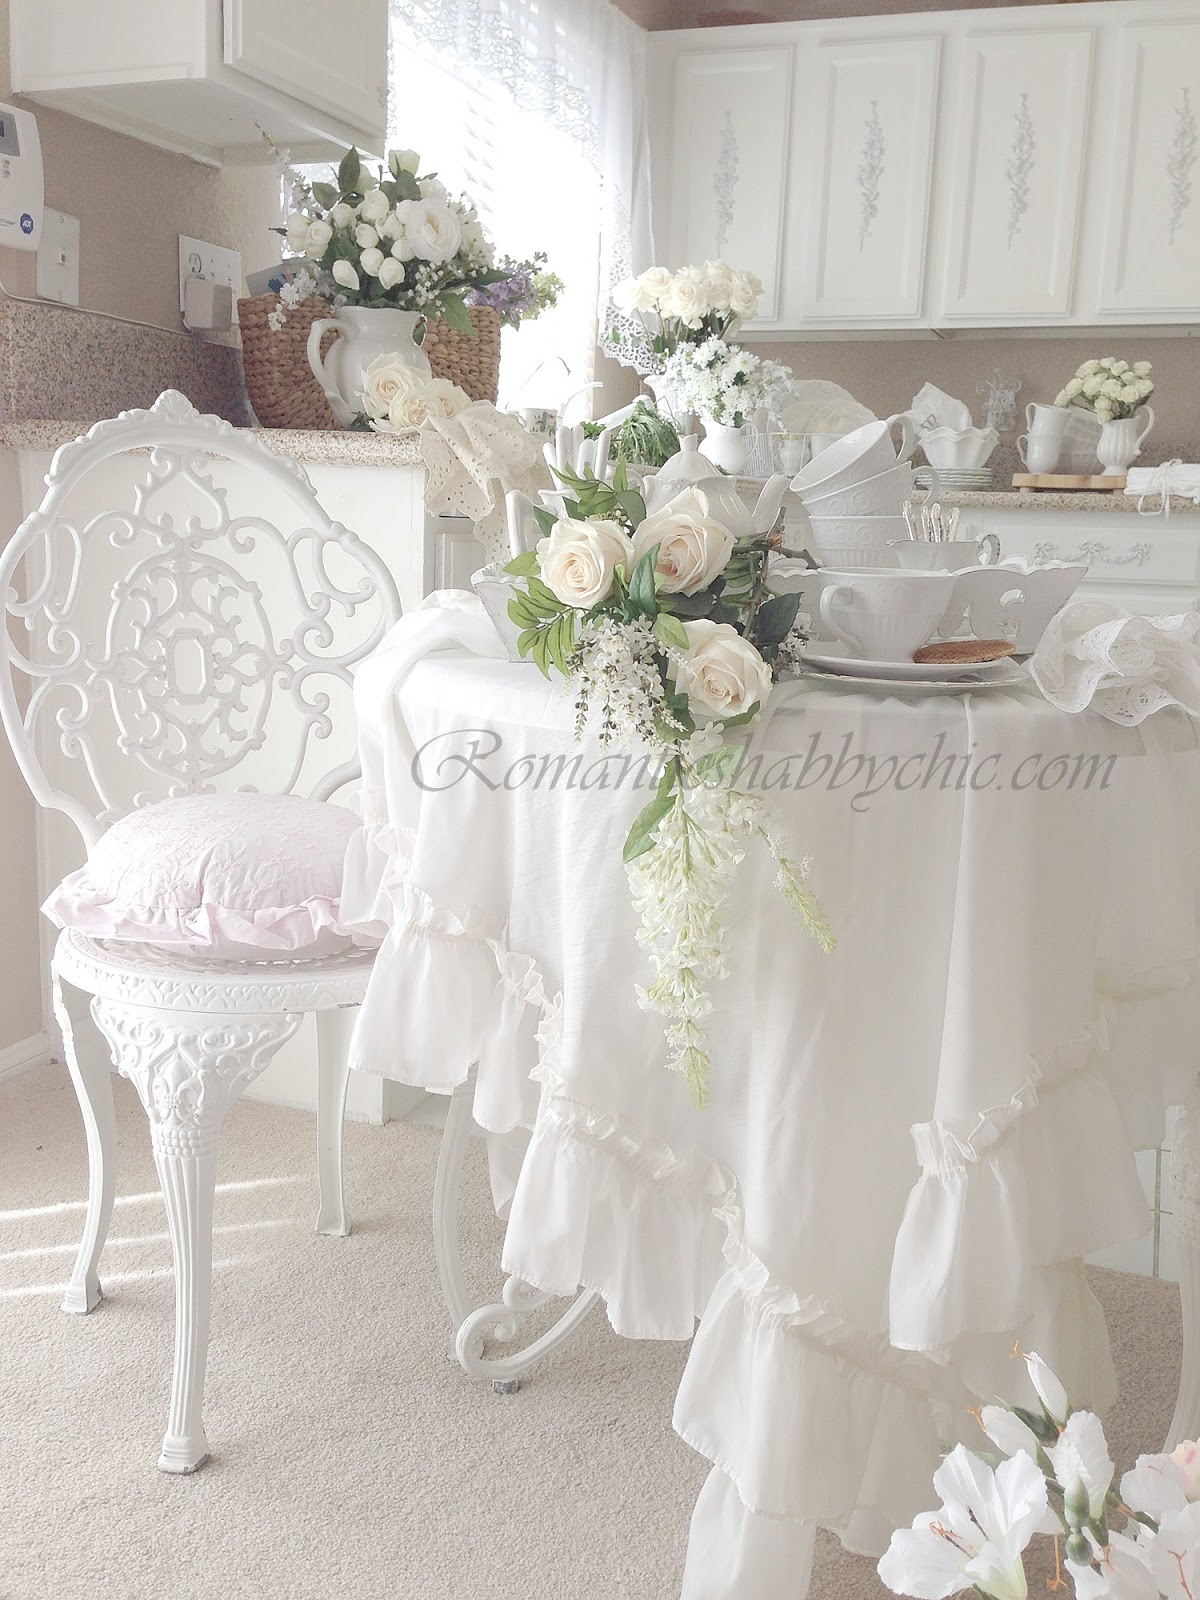 My shabby chic home romantik evim romantik ev my for Shabby chic cottage decor